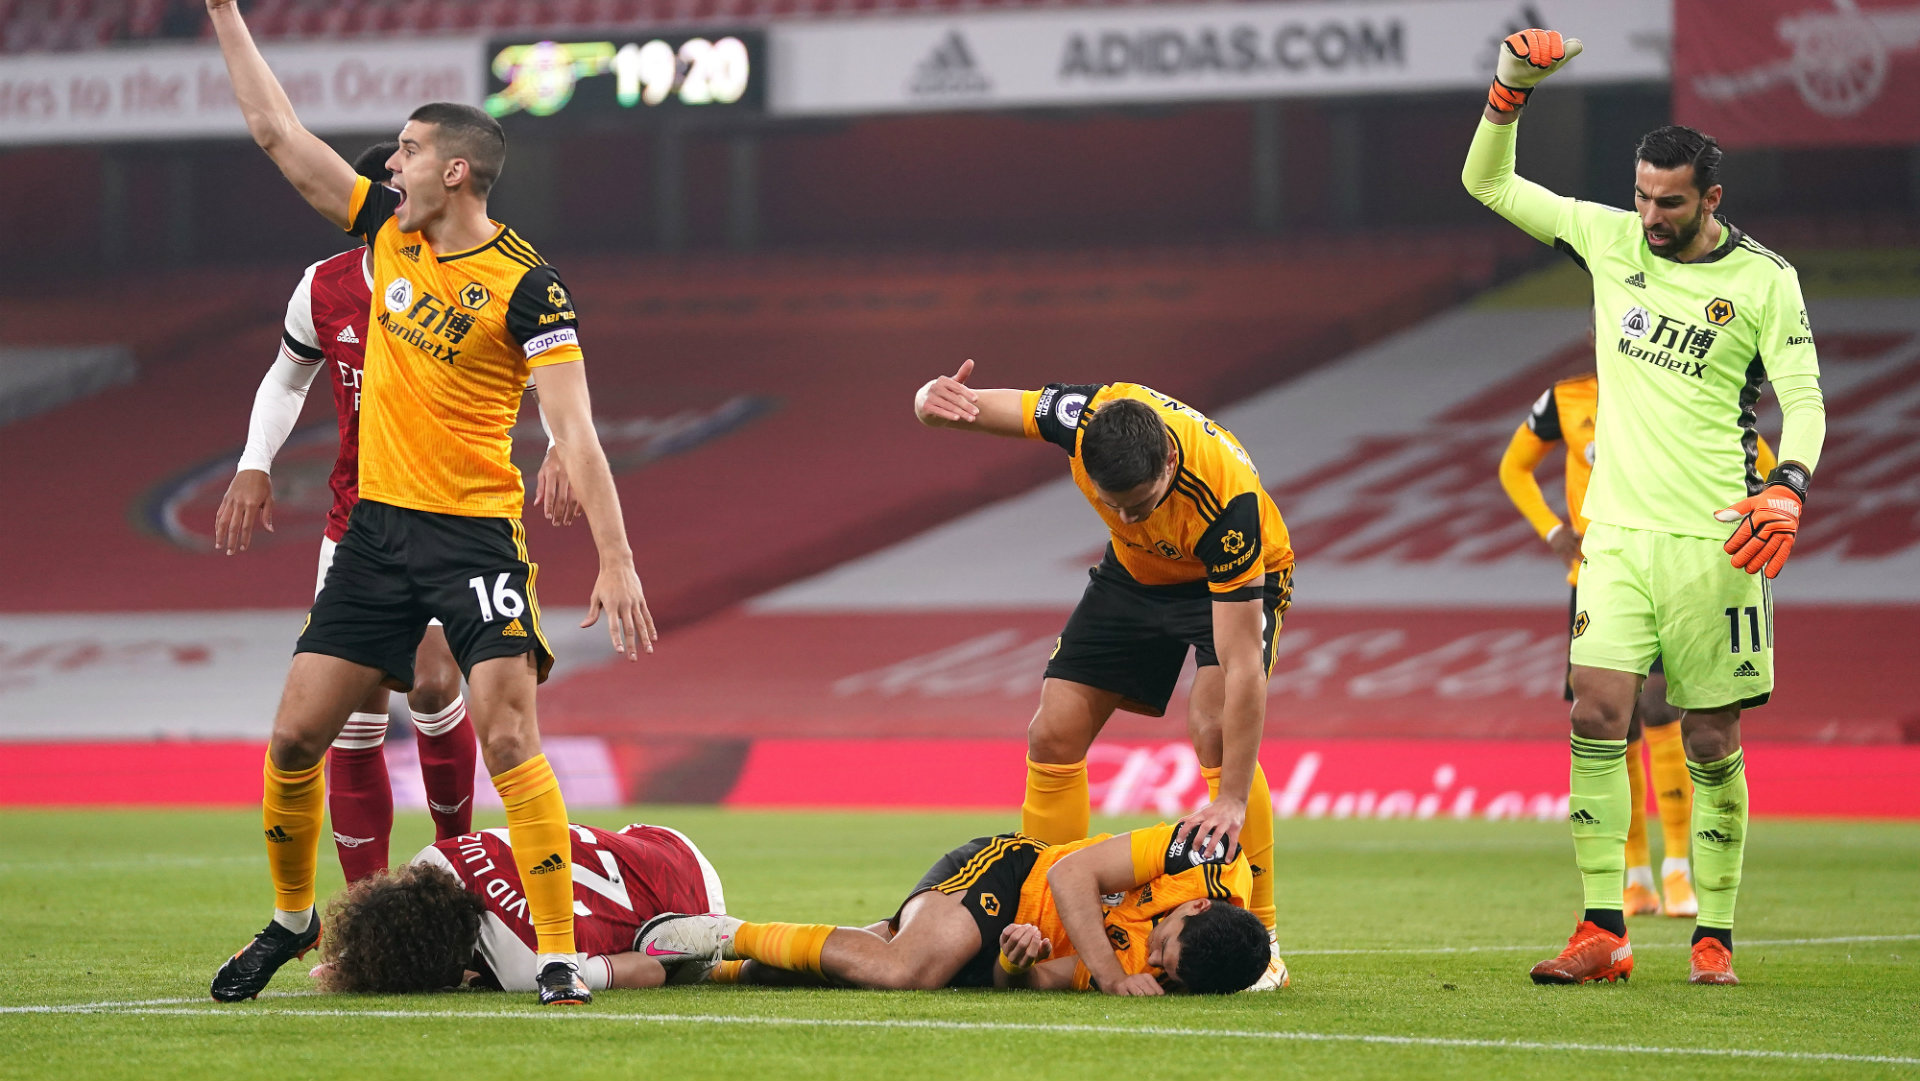 Wolves star Jimenez stretchered off with head injury after clash with David Luiz